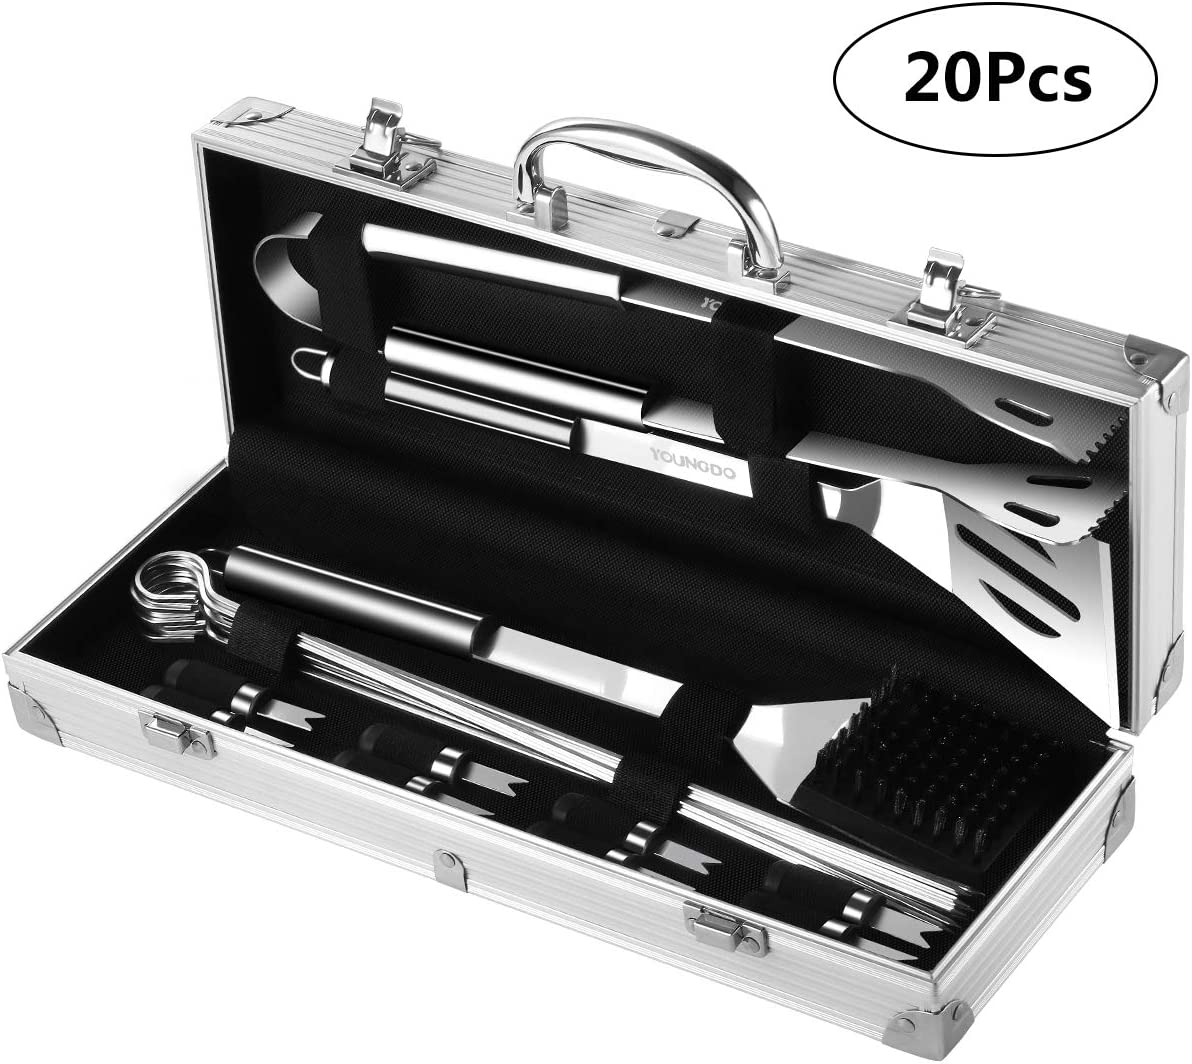 YOUNGDO 20Pcs BBQ Grill Tools Set Barbecue Grilling Accessories Kit with Aluminum Case – Tongs, Grill Brush, Skewers and Spatula Stainless Steel Utensils, Birthday Gifts for Men Dad